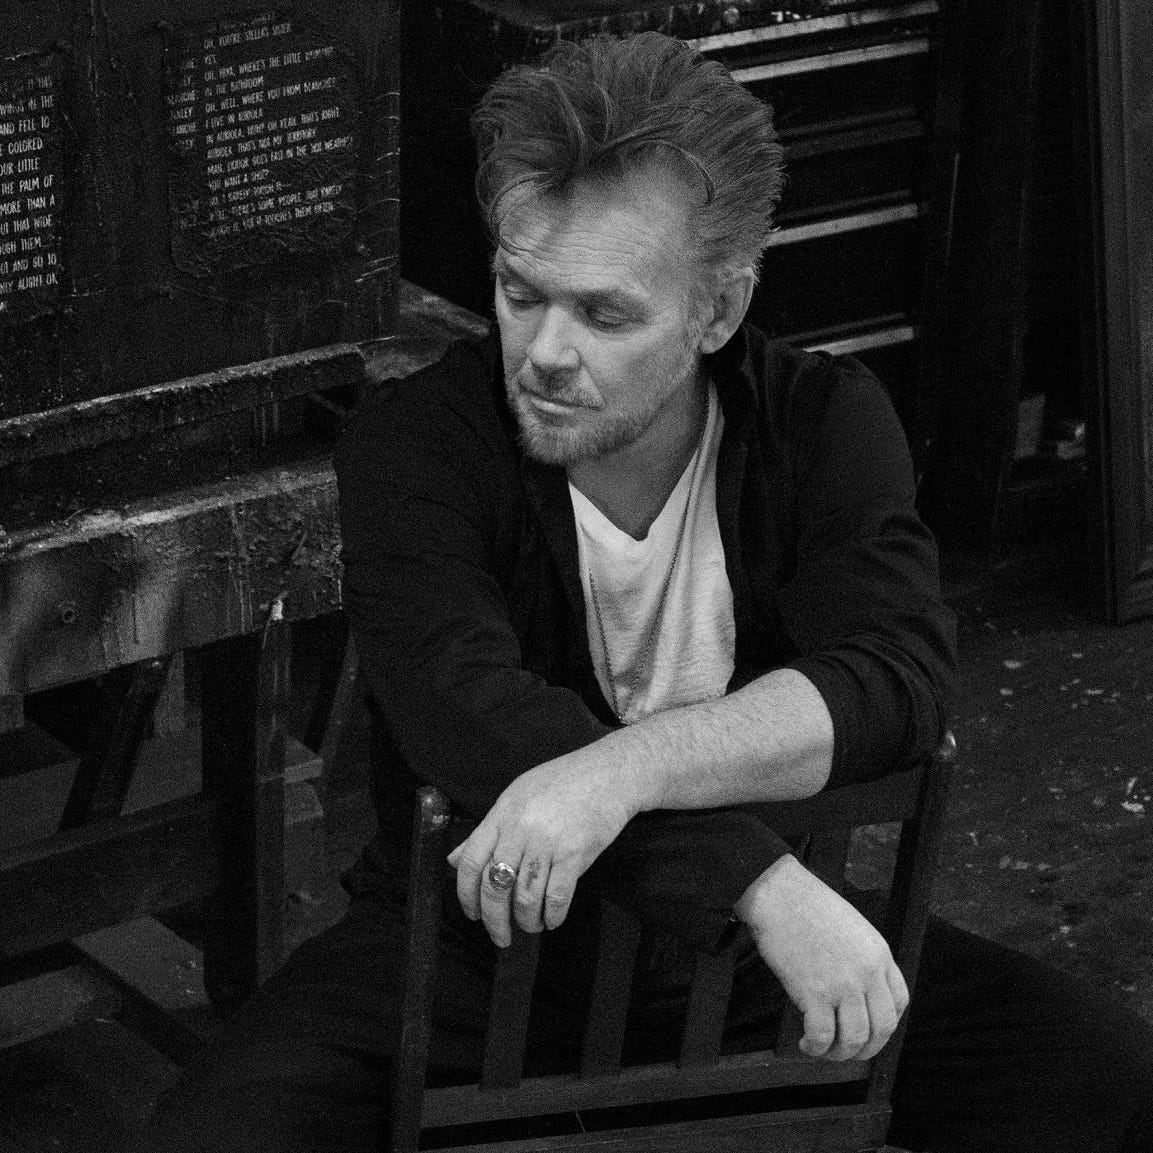 John Mellencamp will perform at Buddhist center's 40th anniversary celebration